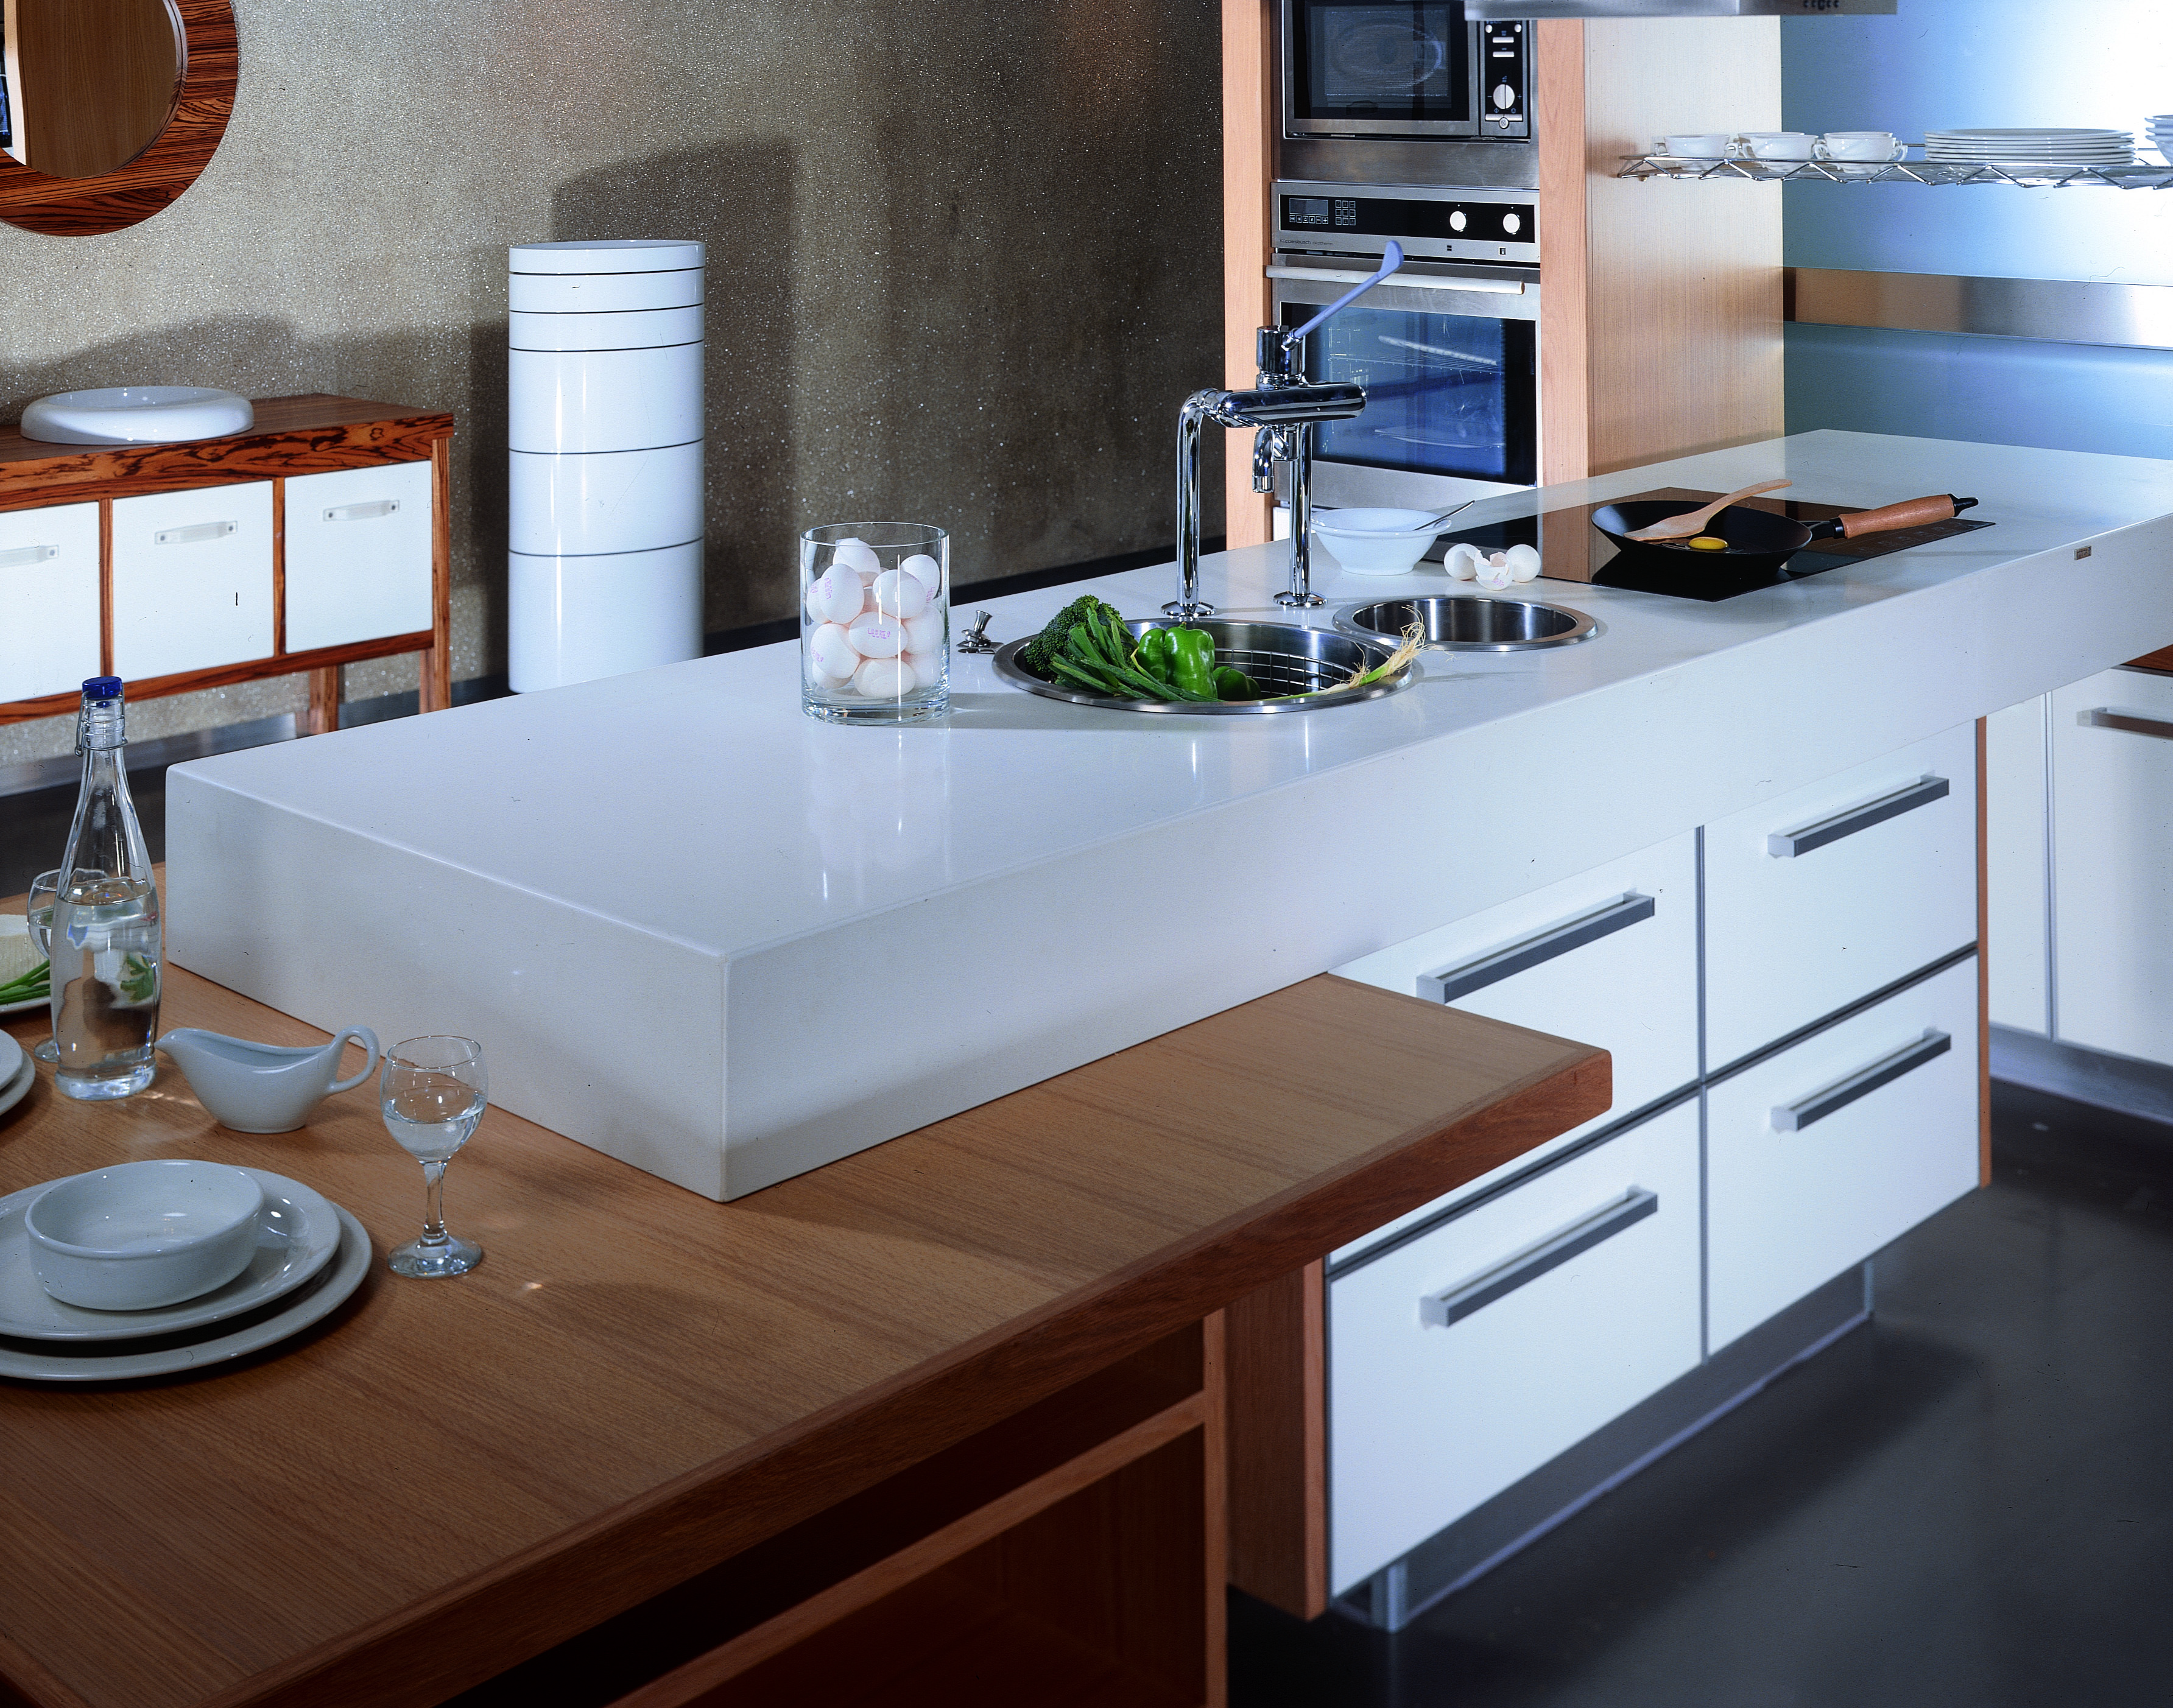 Caesarstone Blizzard Quartz Kitchen